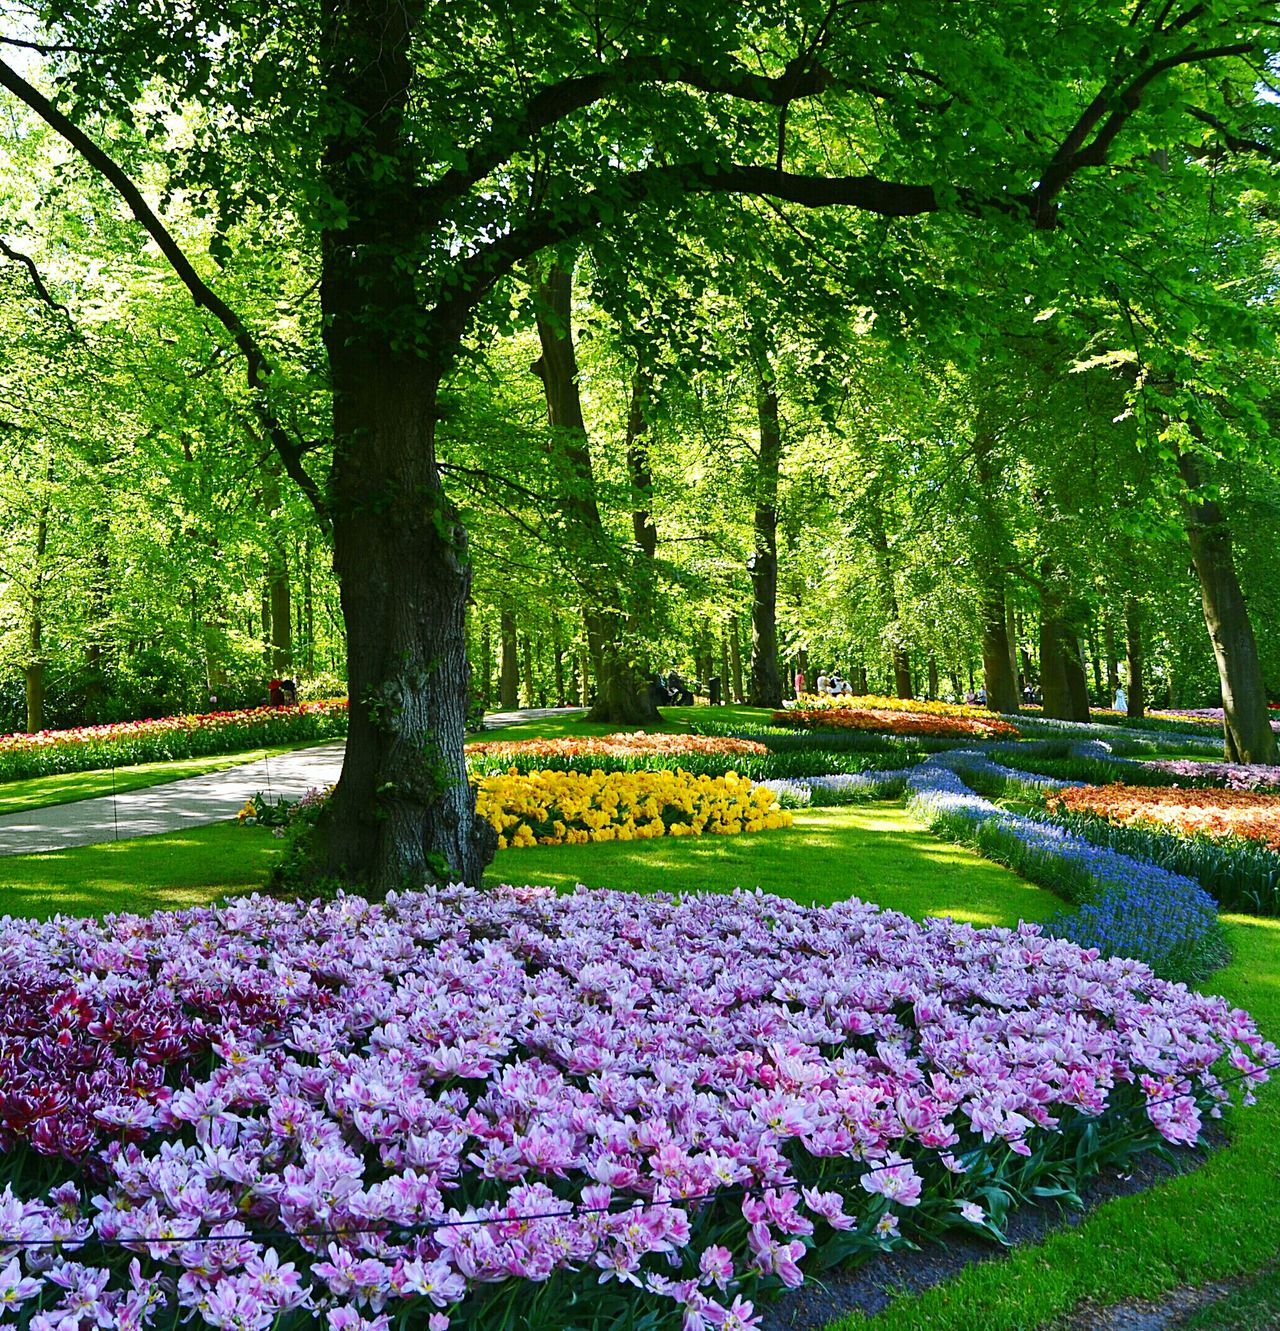 Flower Nature Beauty In Nature Growth Freshness Fragility Park - Man Made Space Plant Petal No People Green Color Flower Head Tree Outdoors Day Tranquility Yellow Flowerbed Botanical Garden Tulips No People, Indoors Tulips🌷 Park Holland Beauty In Nature